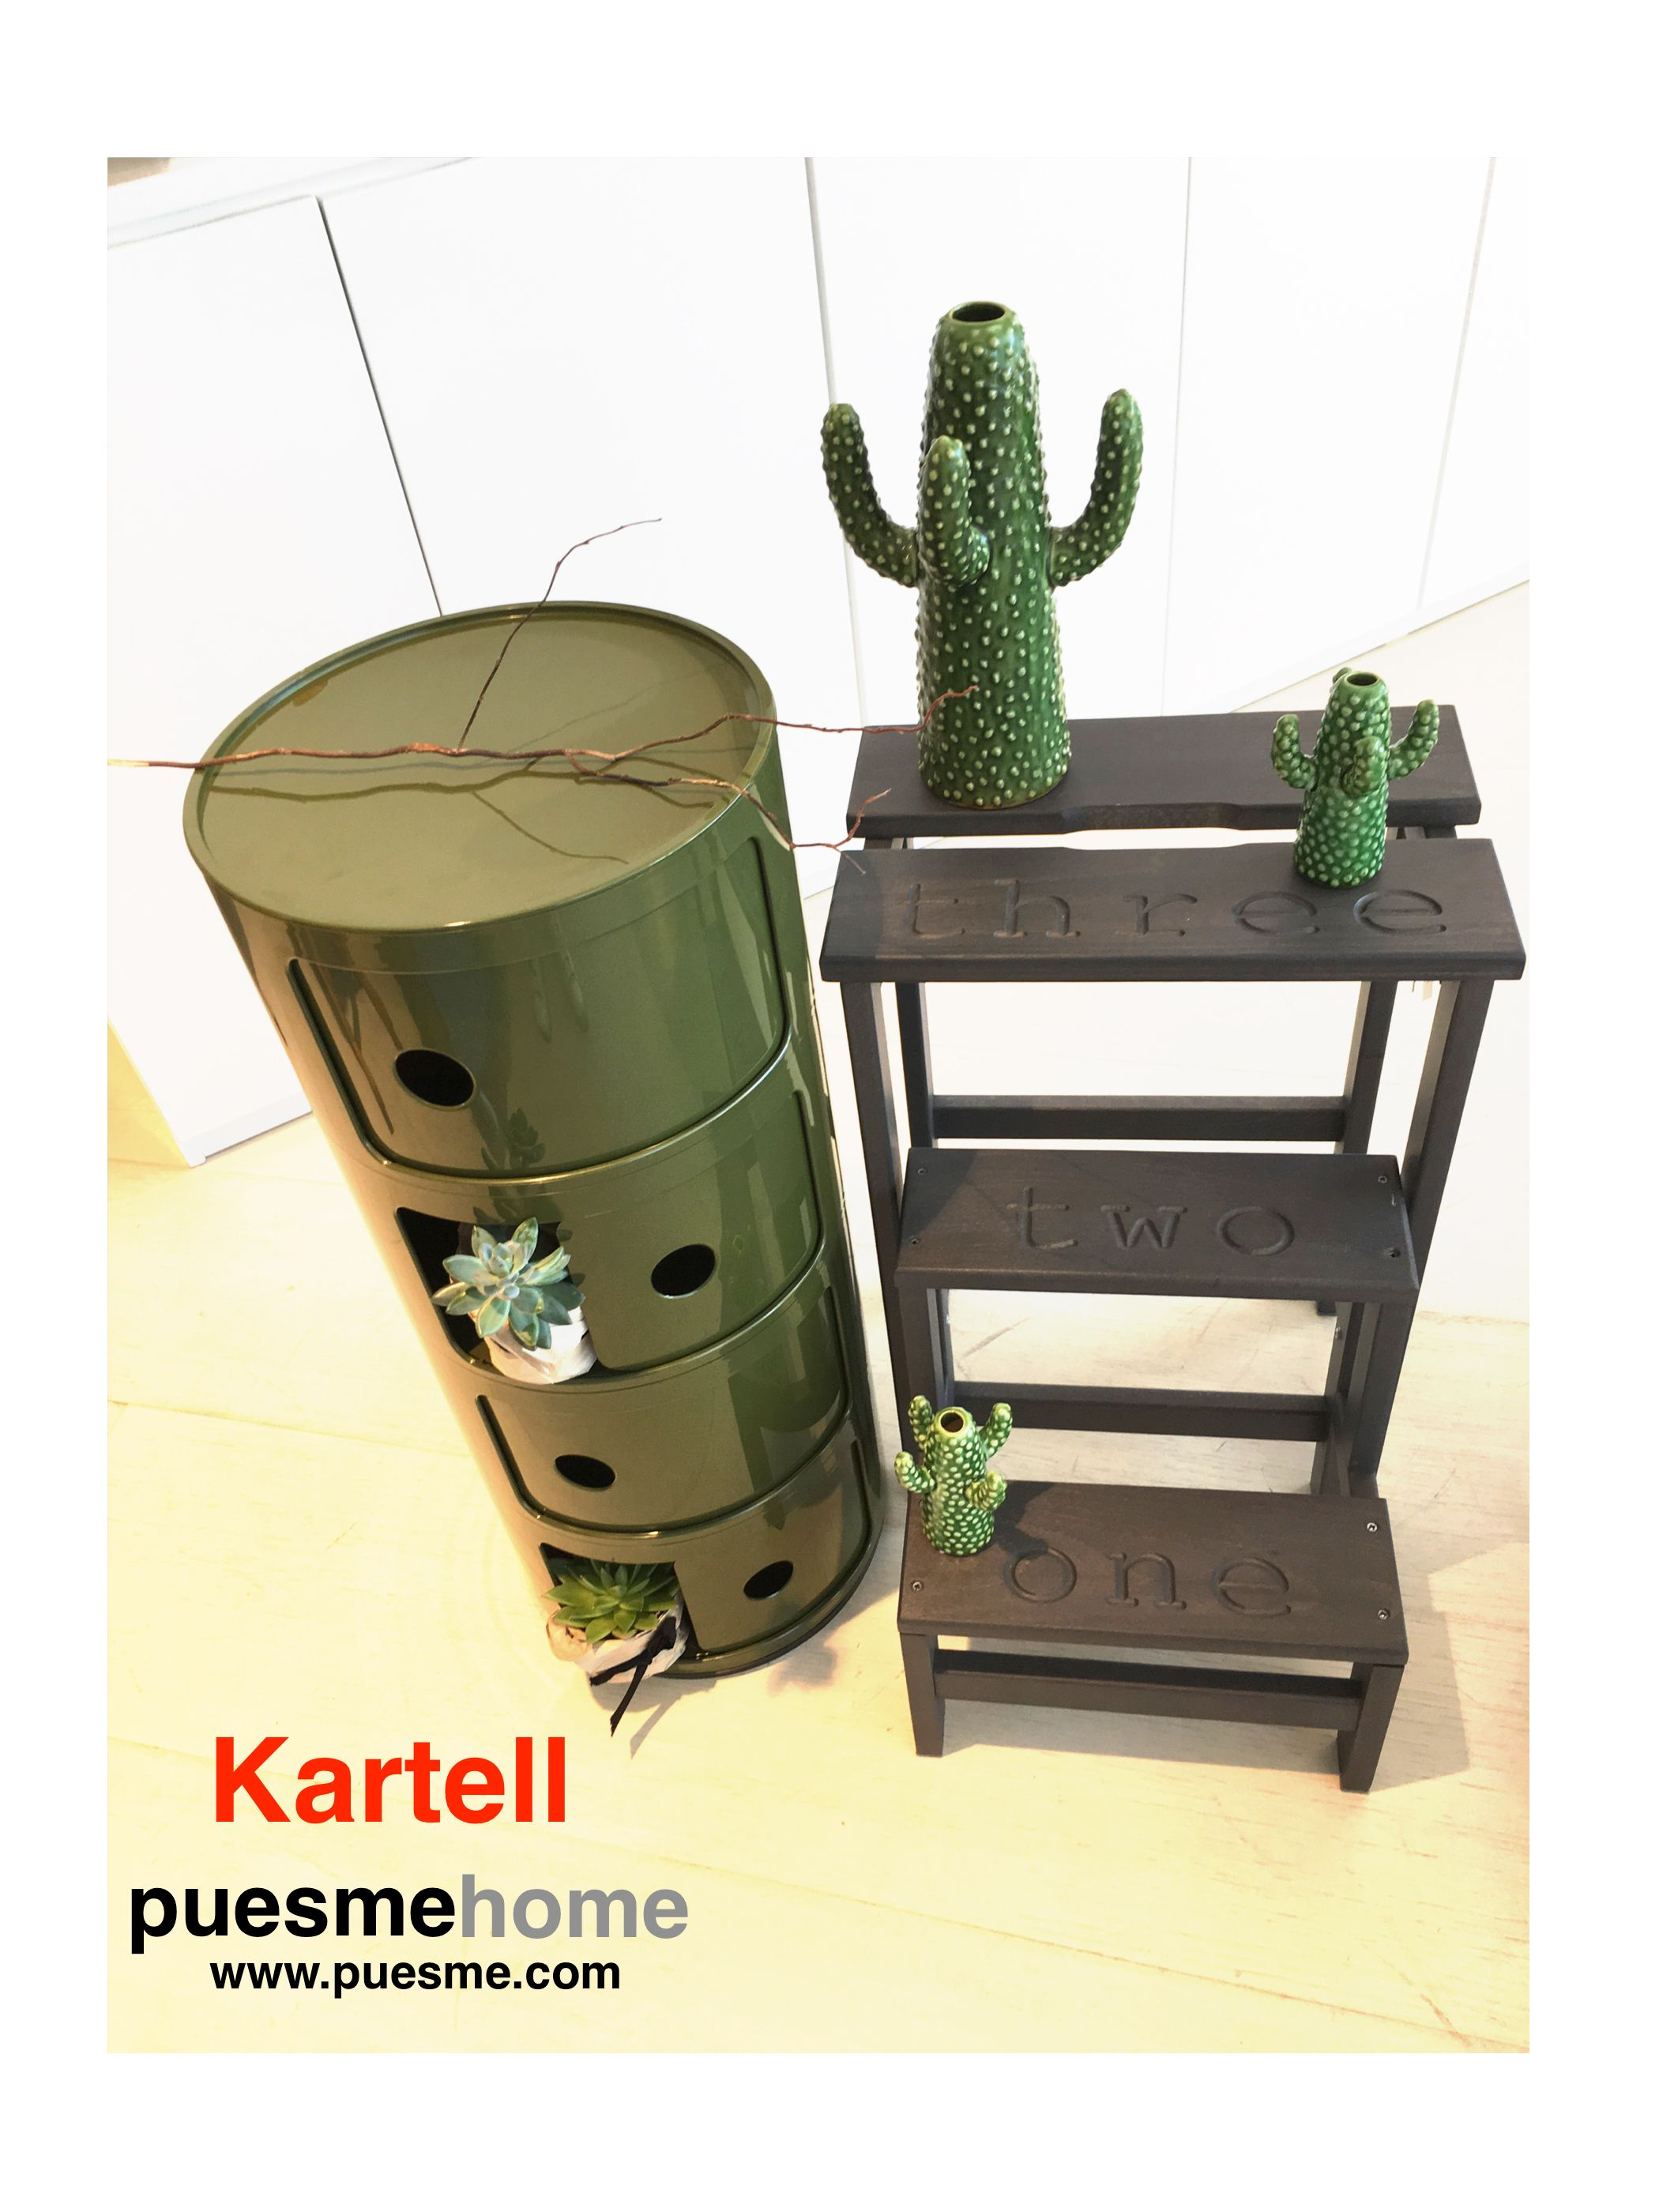 componibile Kartell, puesmehome, verde, new color, design #musthave